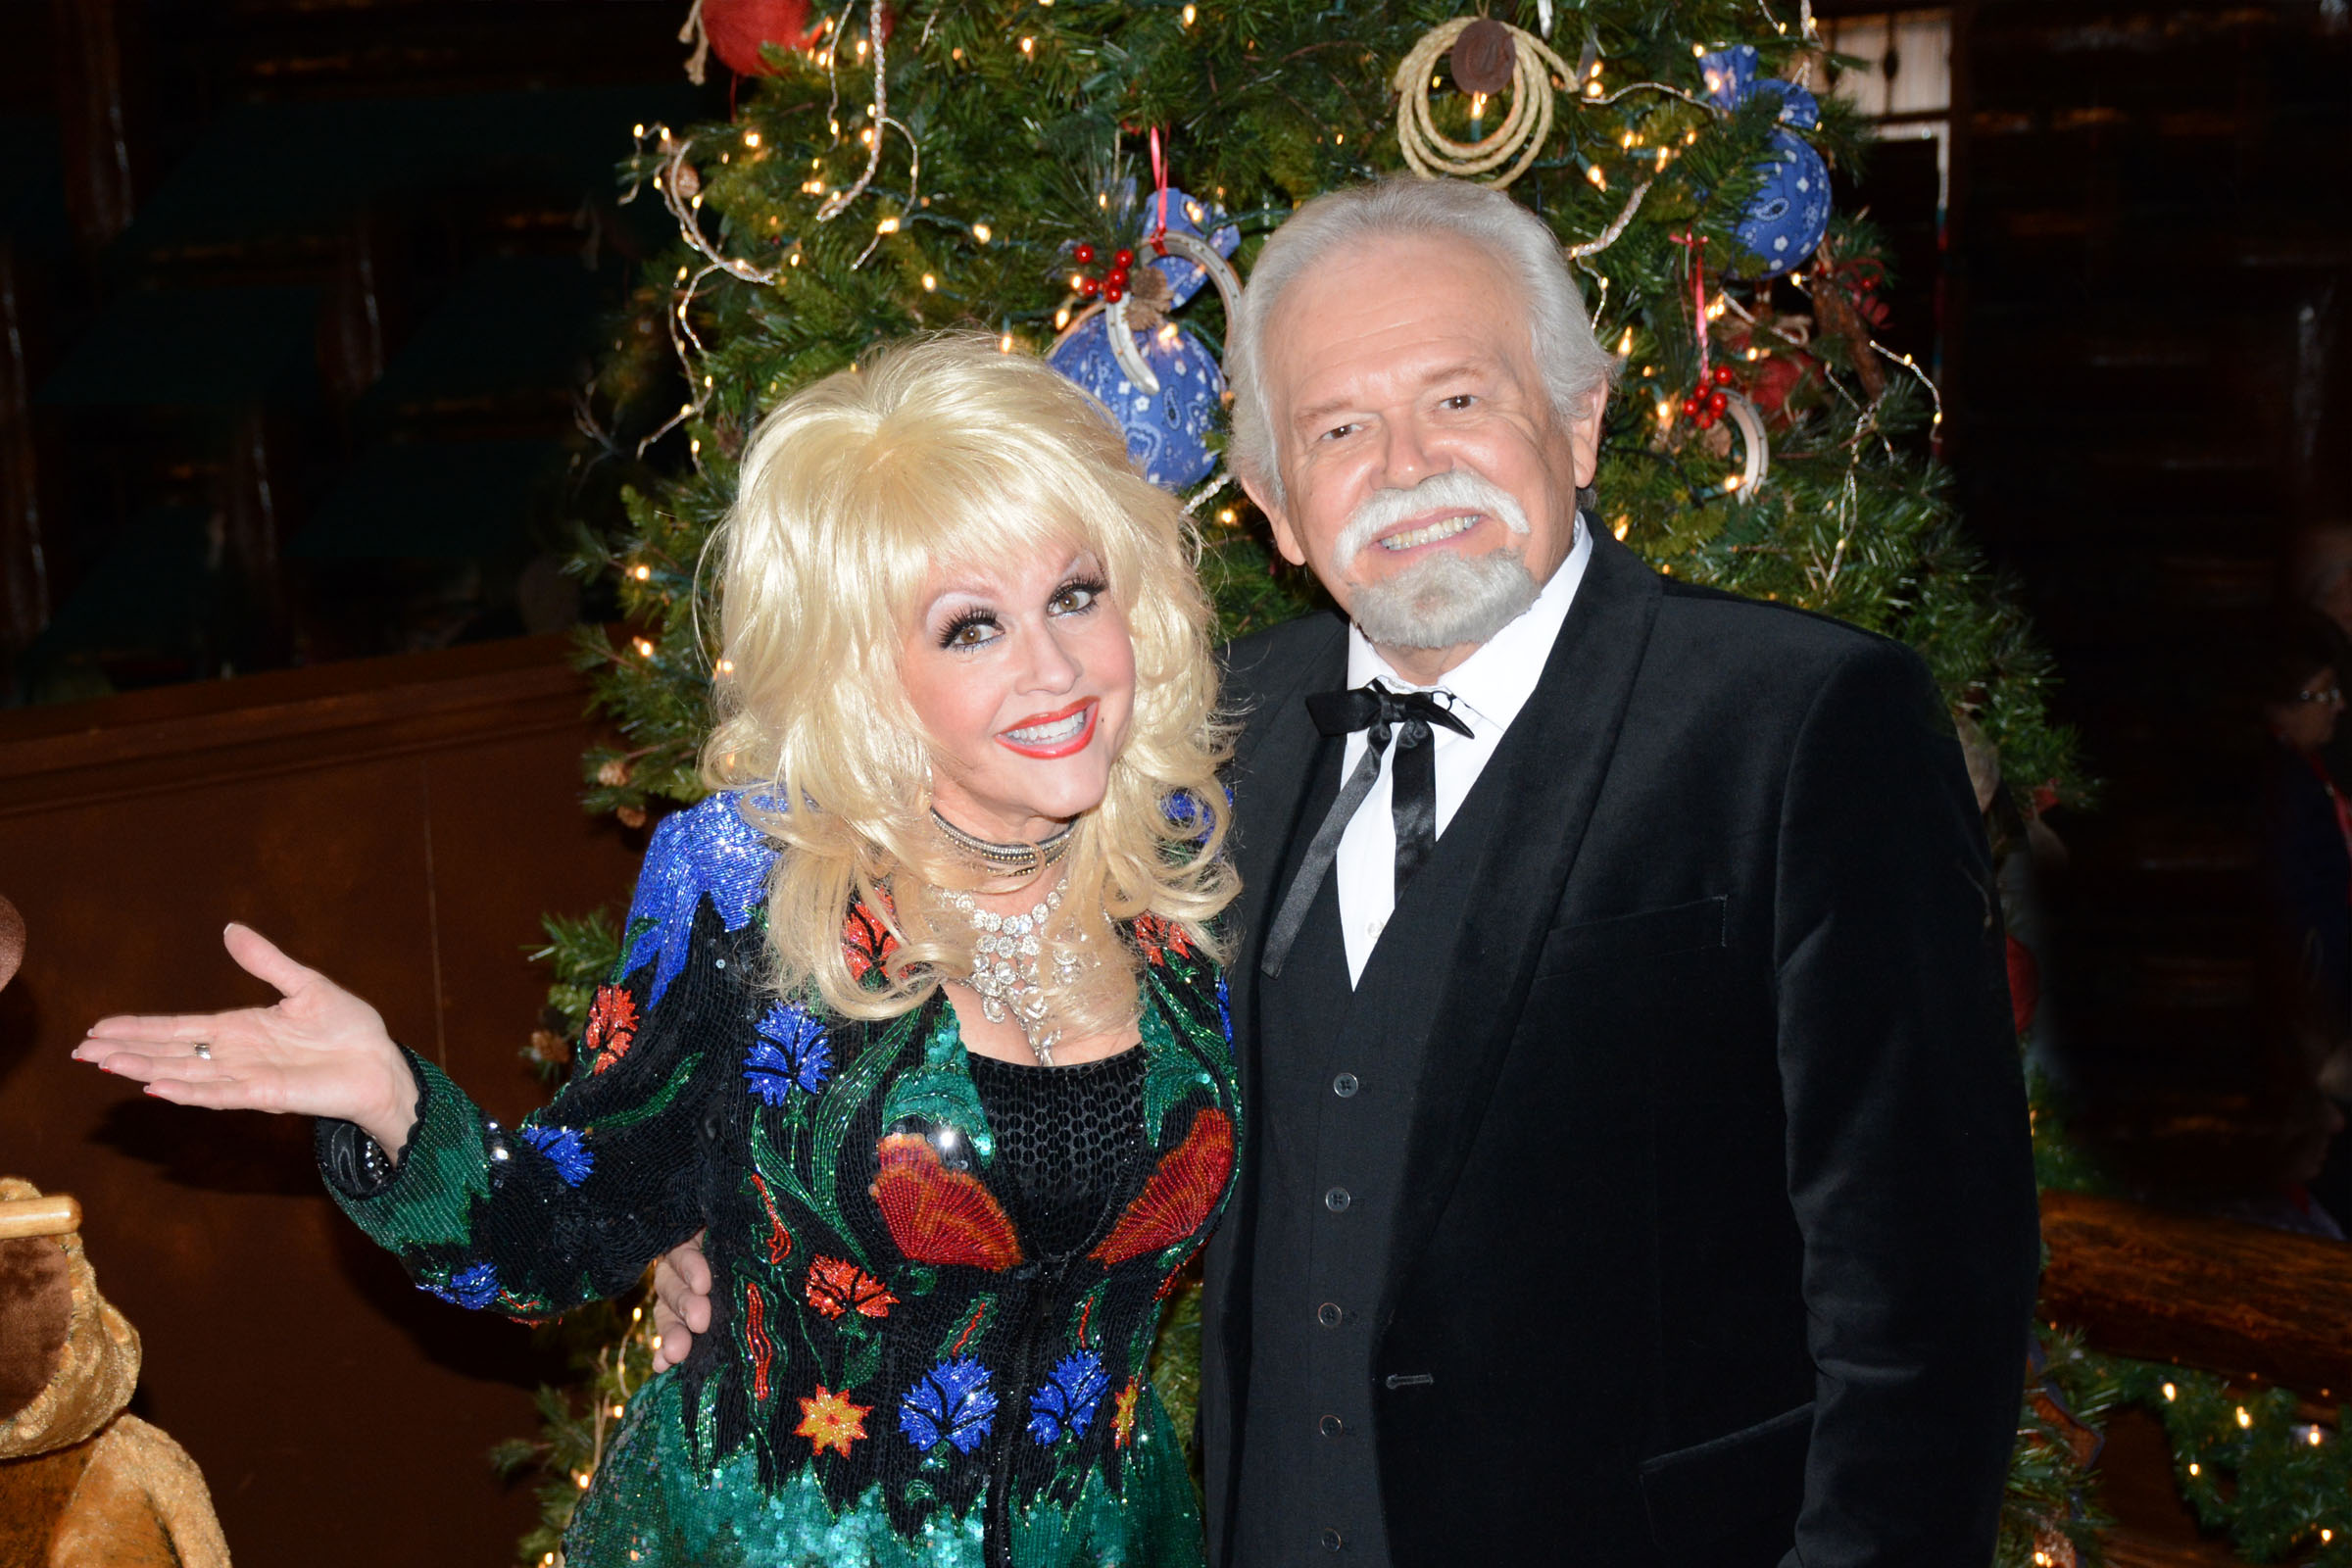 Kenny And Dolly Christmas.Kenny Dolly Christmas Tribute Starved Rock Lodge